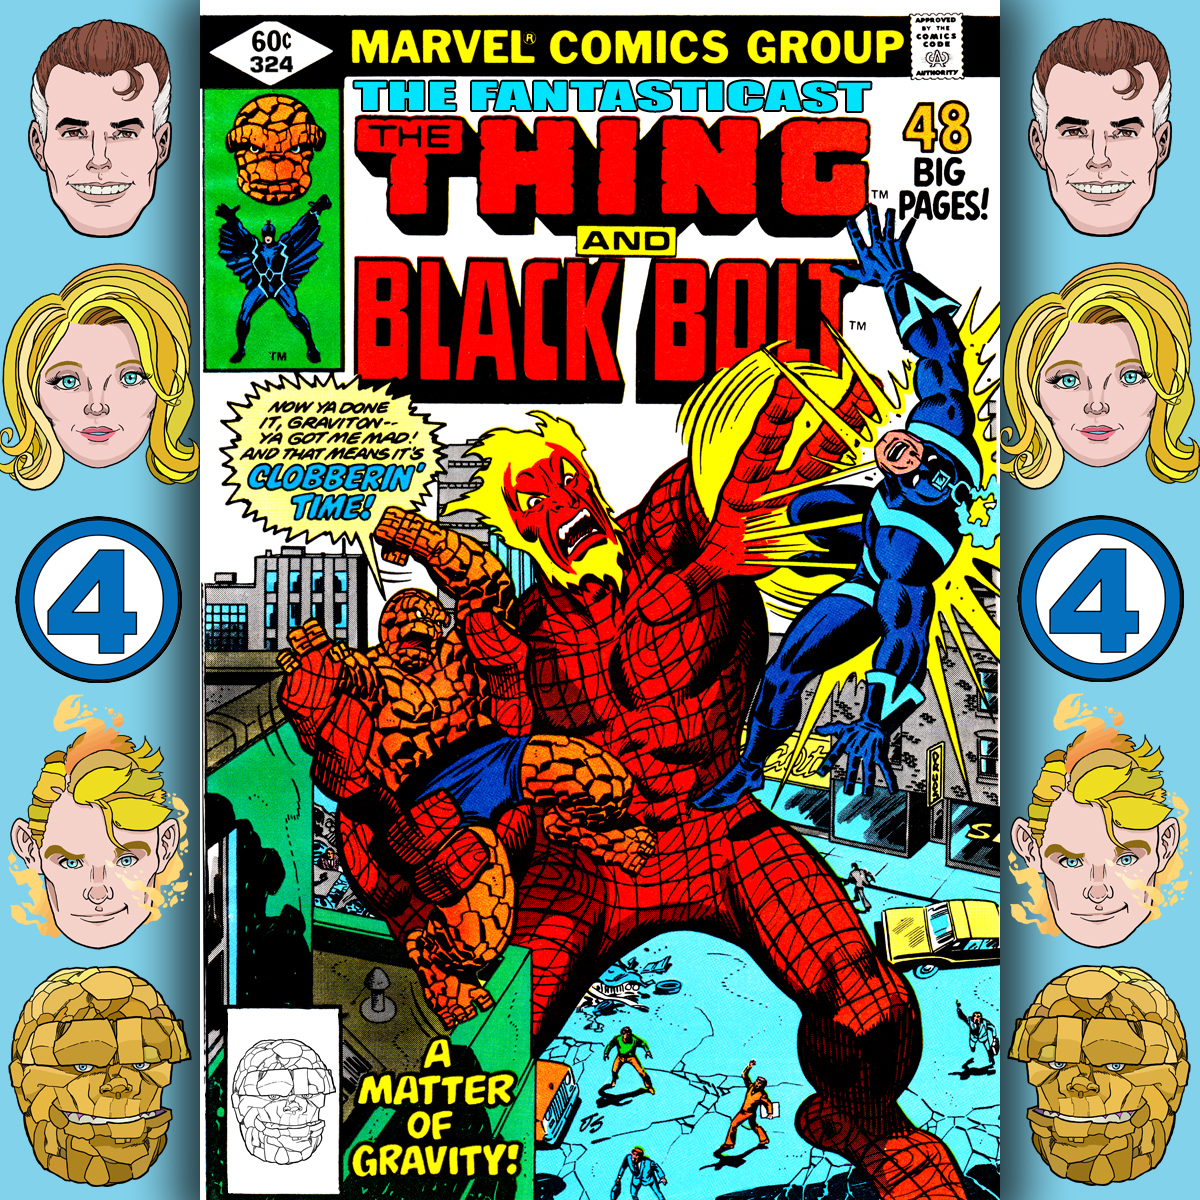 The Fantasticast Episode 324